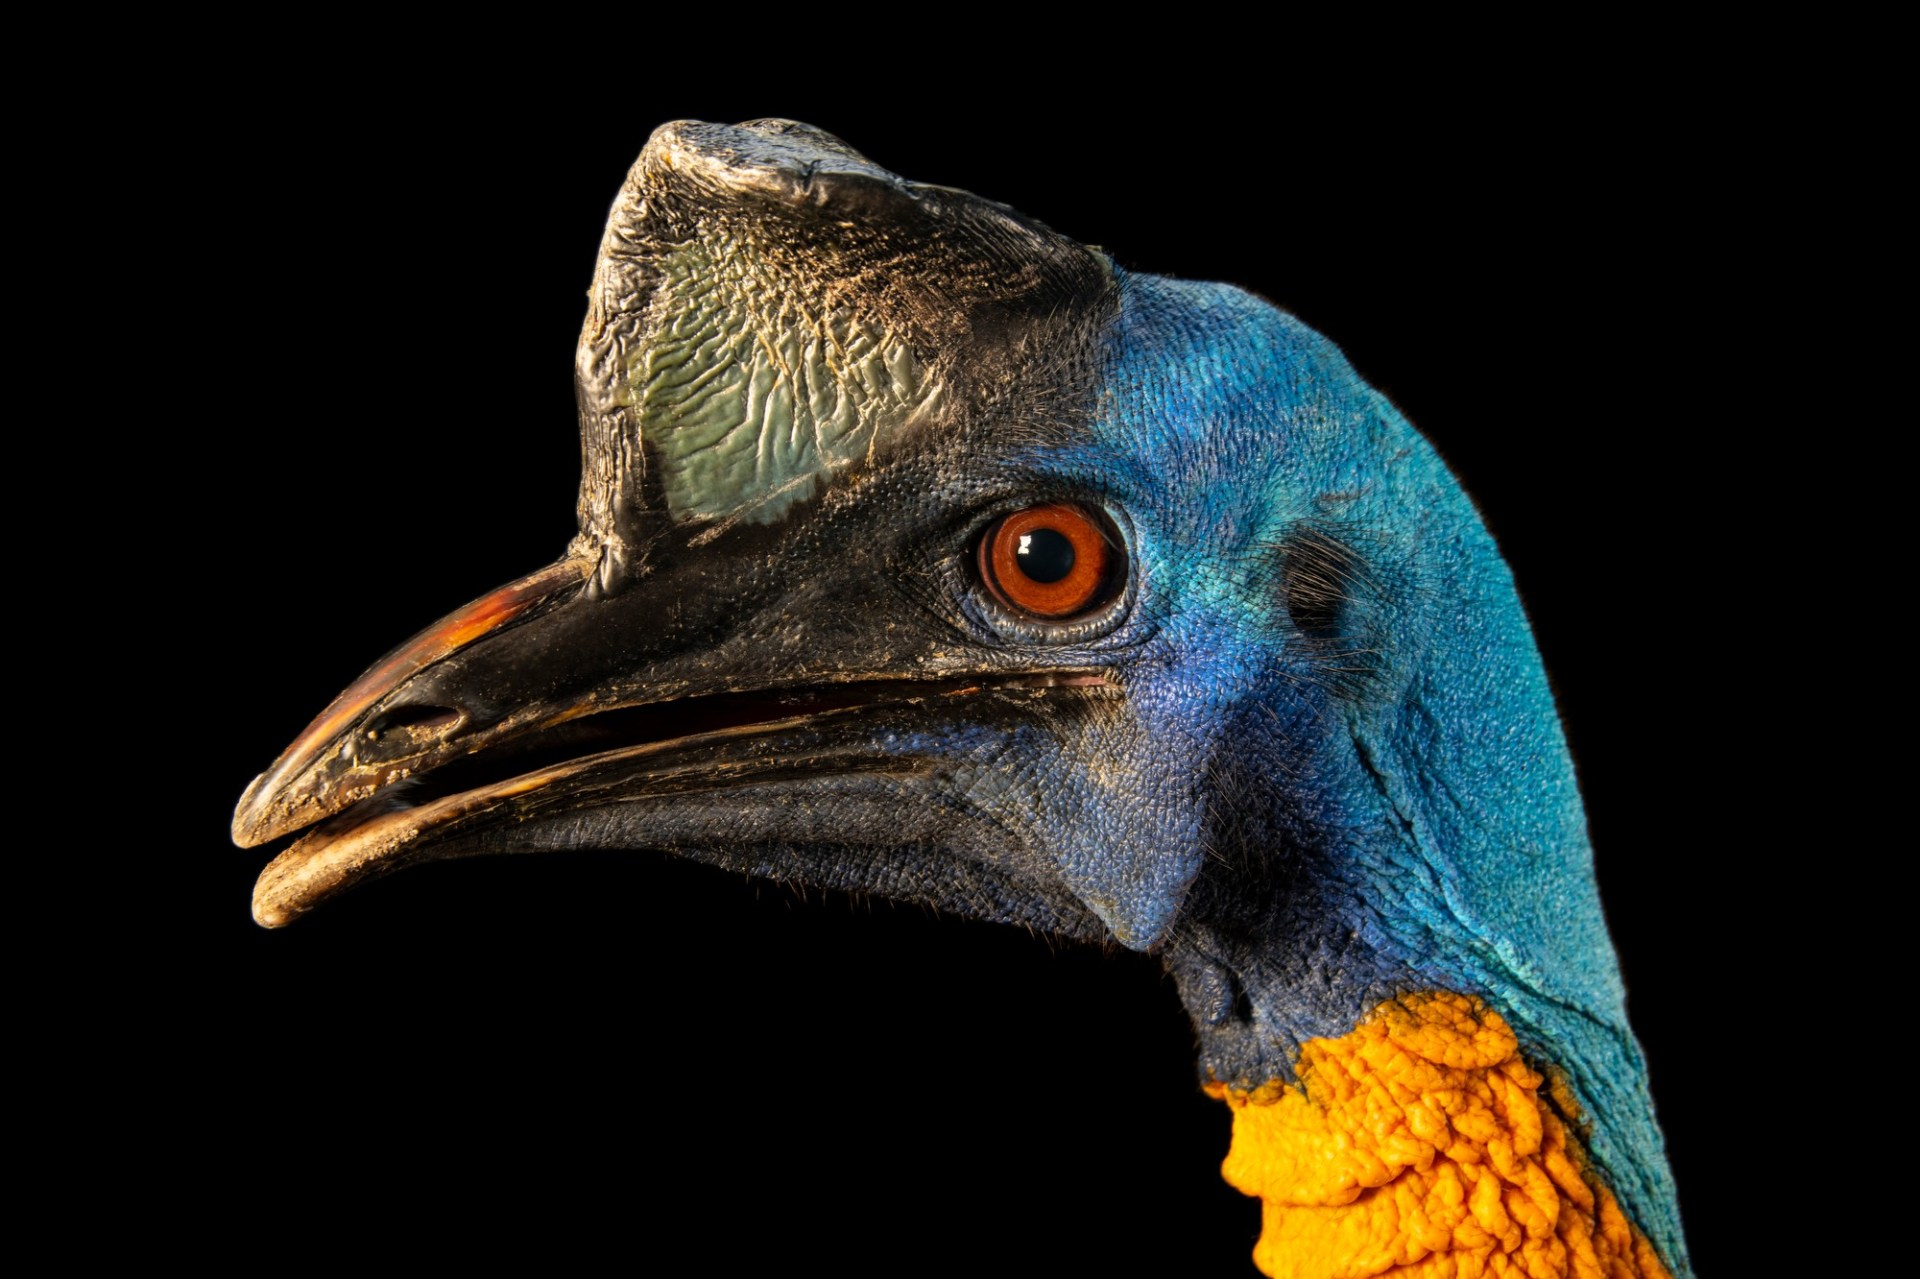 Photo: Single wattled cassowary (Casuarius unappendiculatus unappendiculatus) at Avilon Zoo.